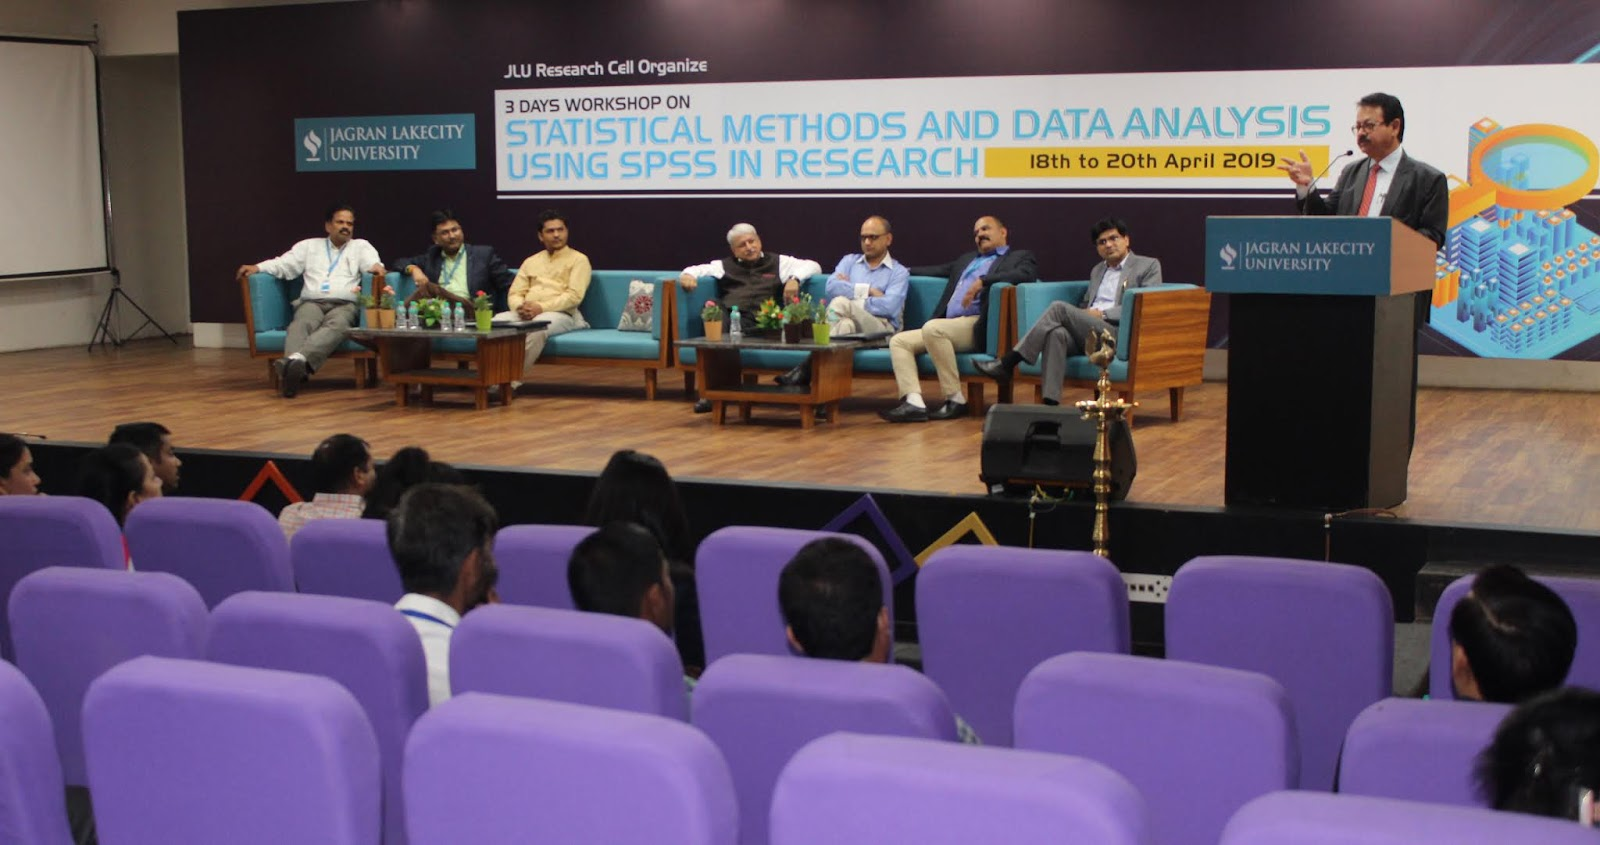 JLU's Research Cell hosts 3 Days Workshop on 'Data Analysis